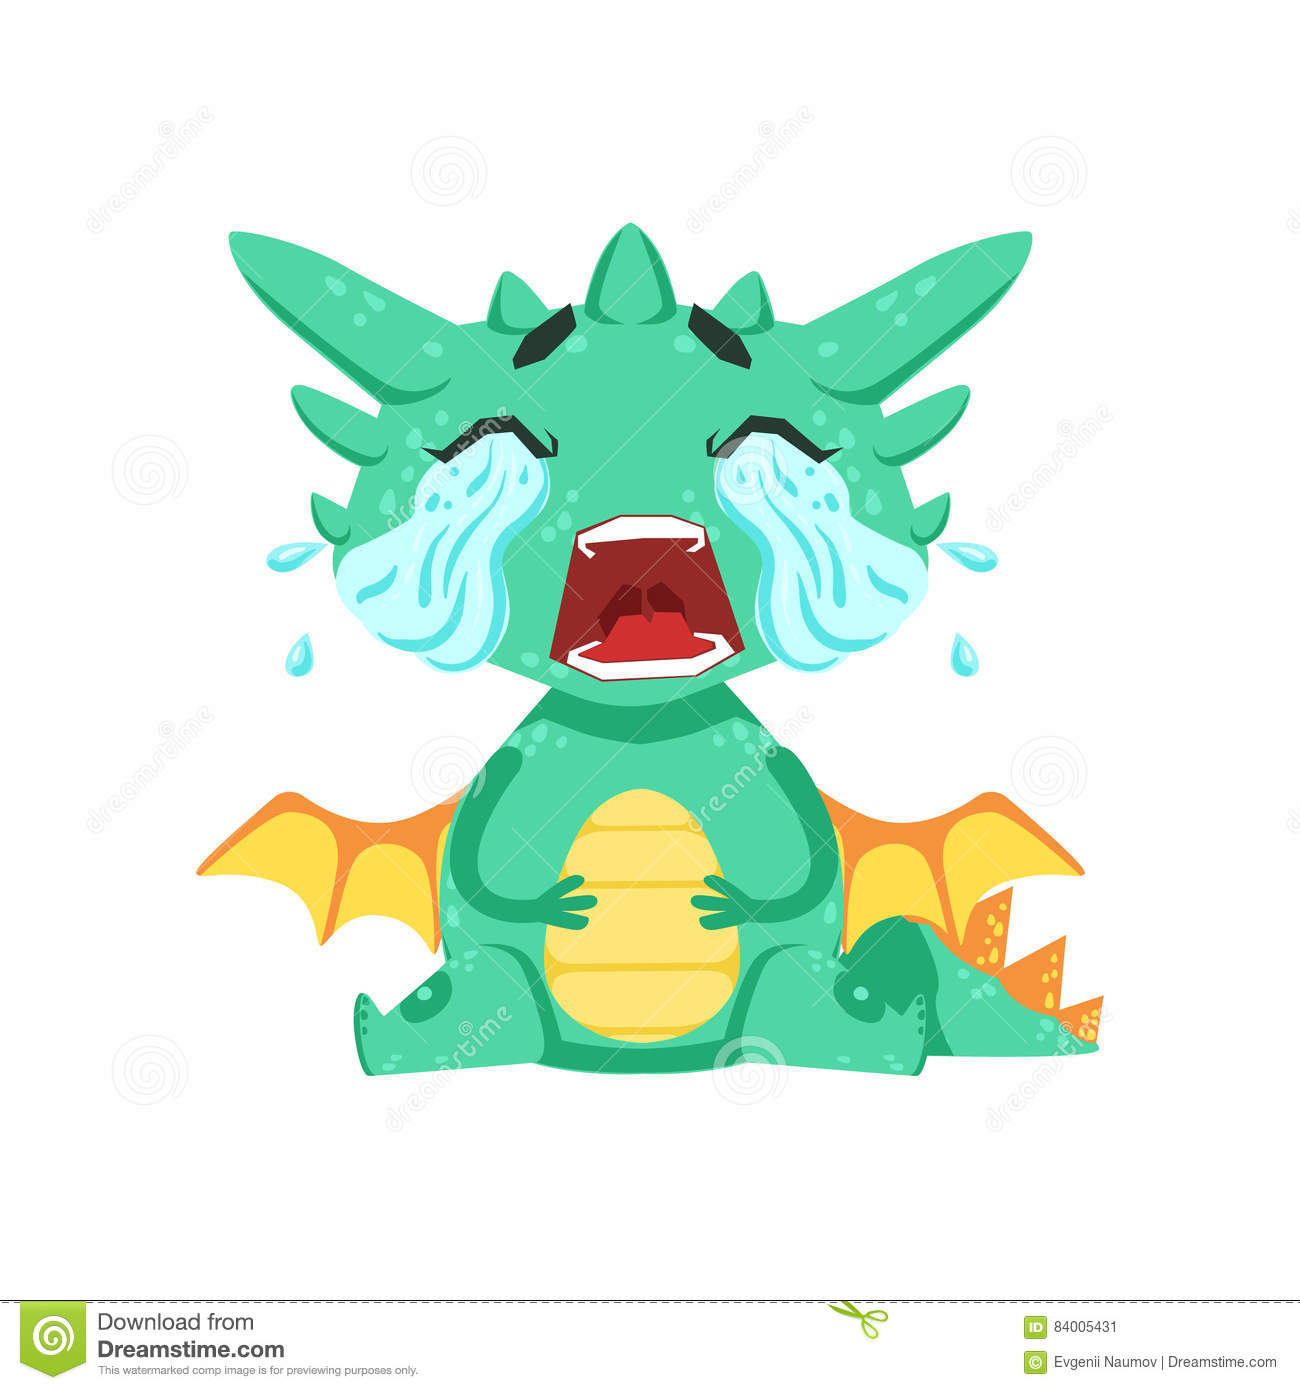 Little Anime Style Baby Dragon Crying Out Loud With Streams Of Tears Cartoon Character Emoji Illustration